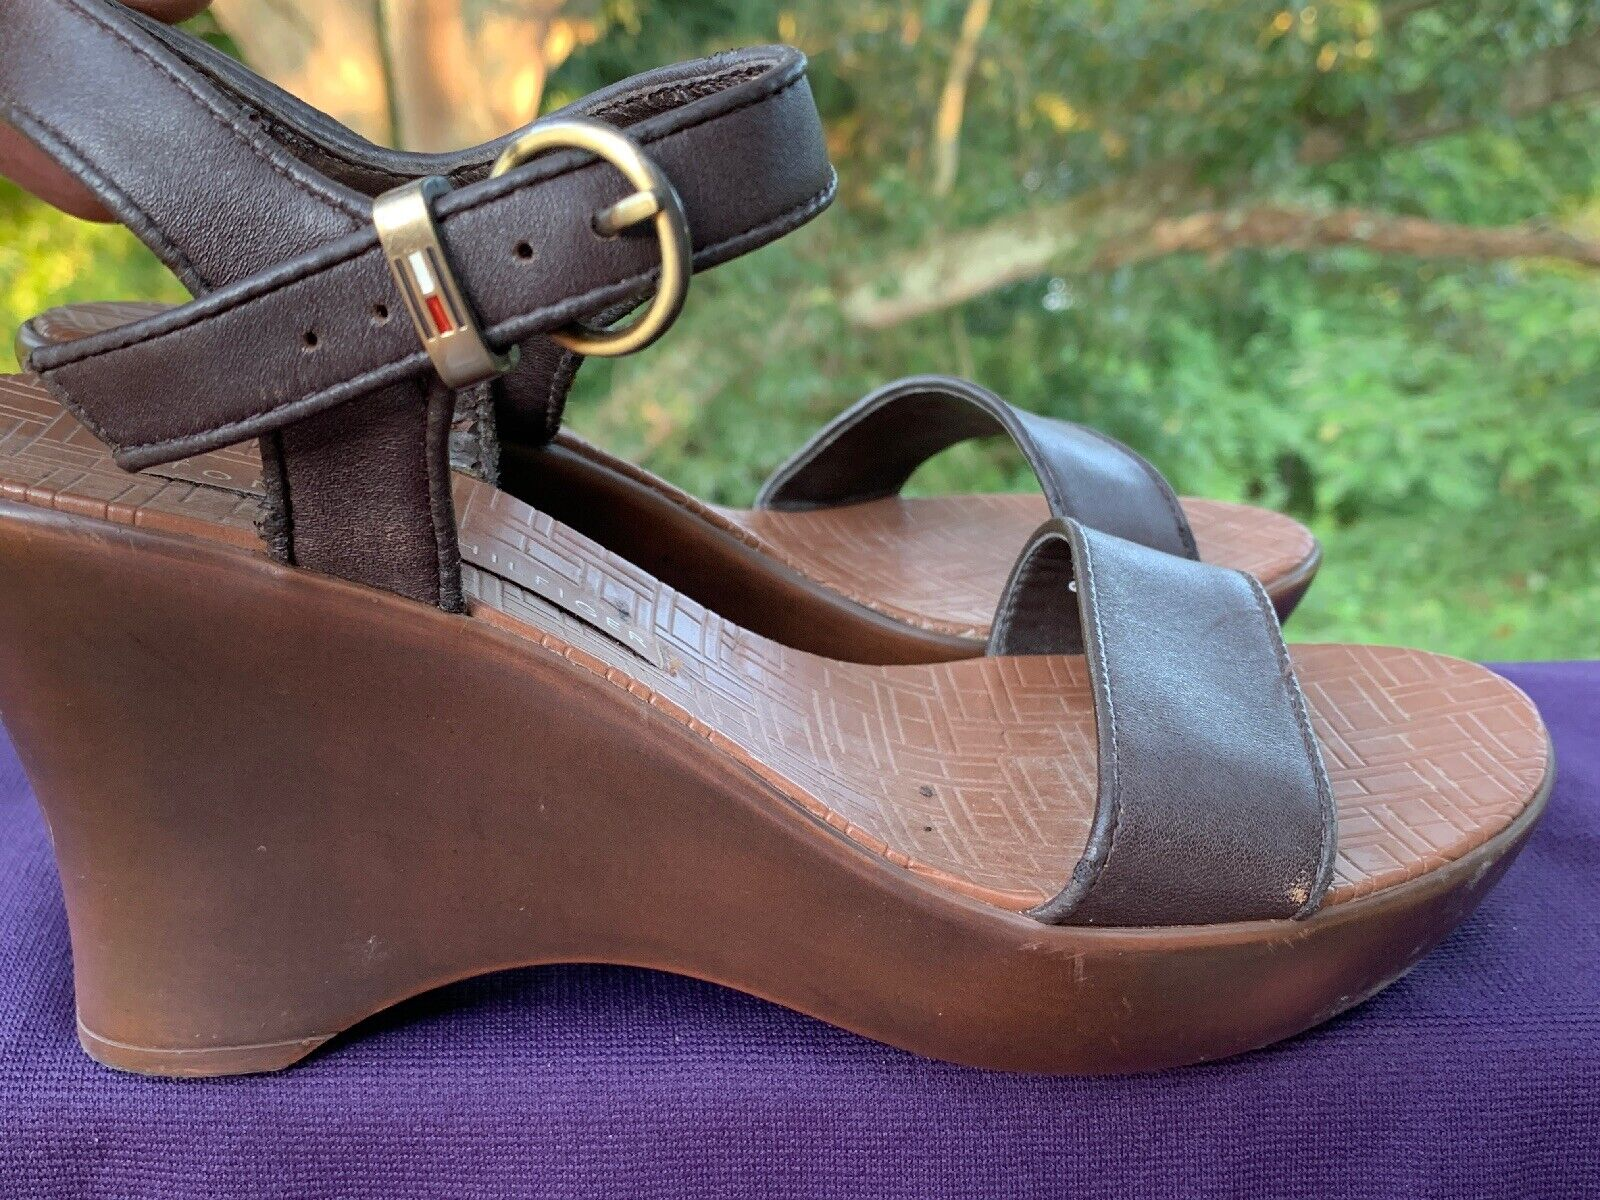 TOMMY HILFIGER Leather Slingbacks Clogs Mules Wed… - image 3